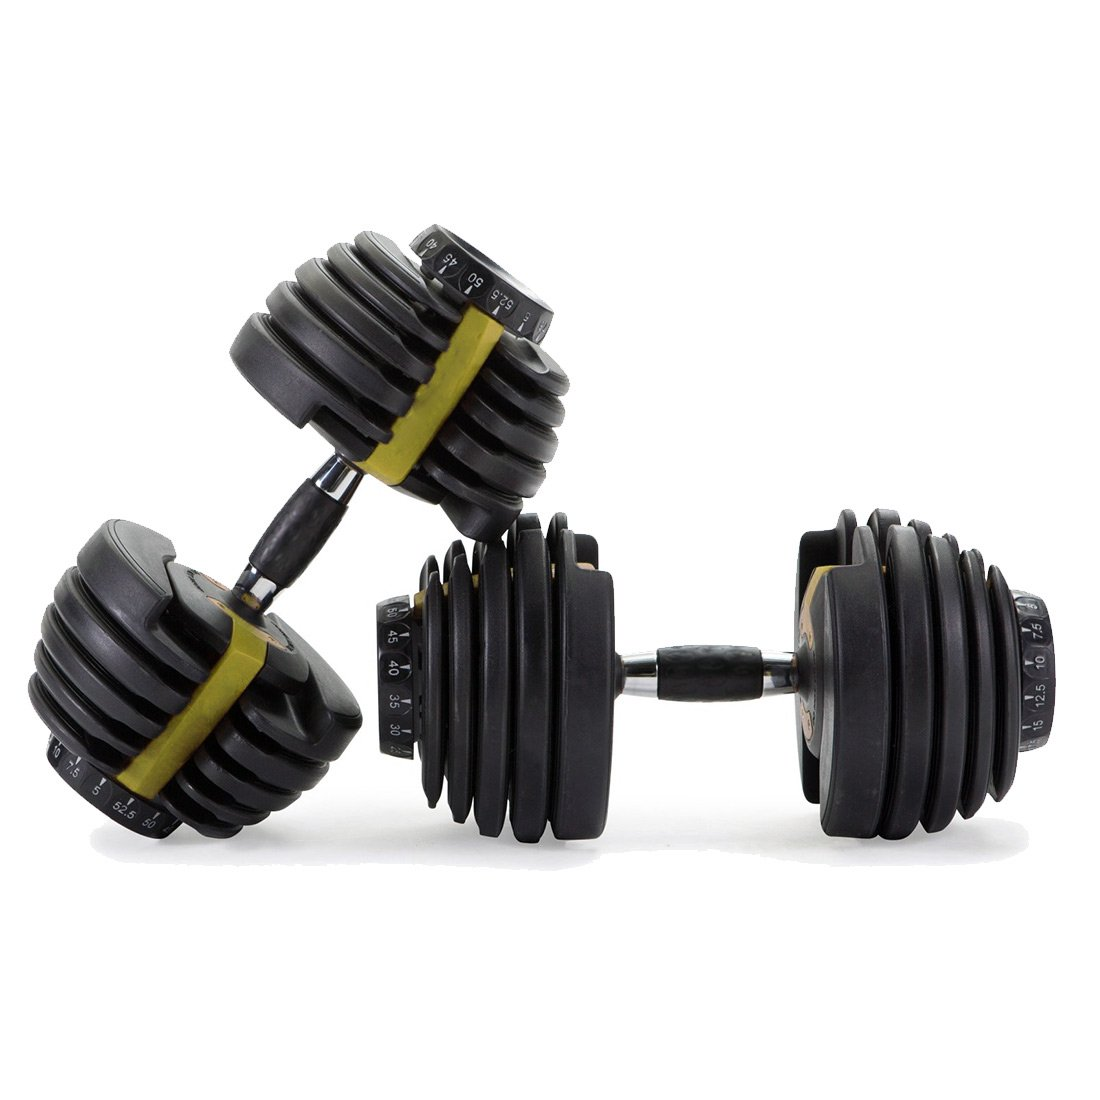 Custom color Manu direct Women Body Gym Dial Commercial Dumbles <strong>Weight</strong> Lifting Adjustable Iron Plate Dumbbells